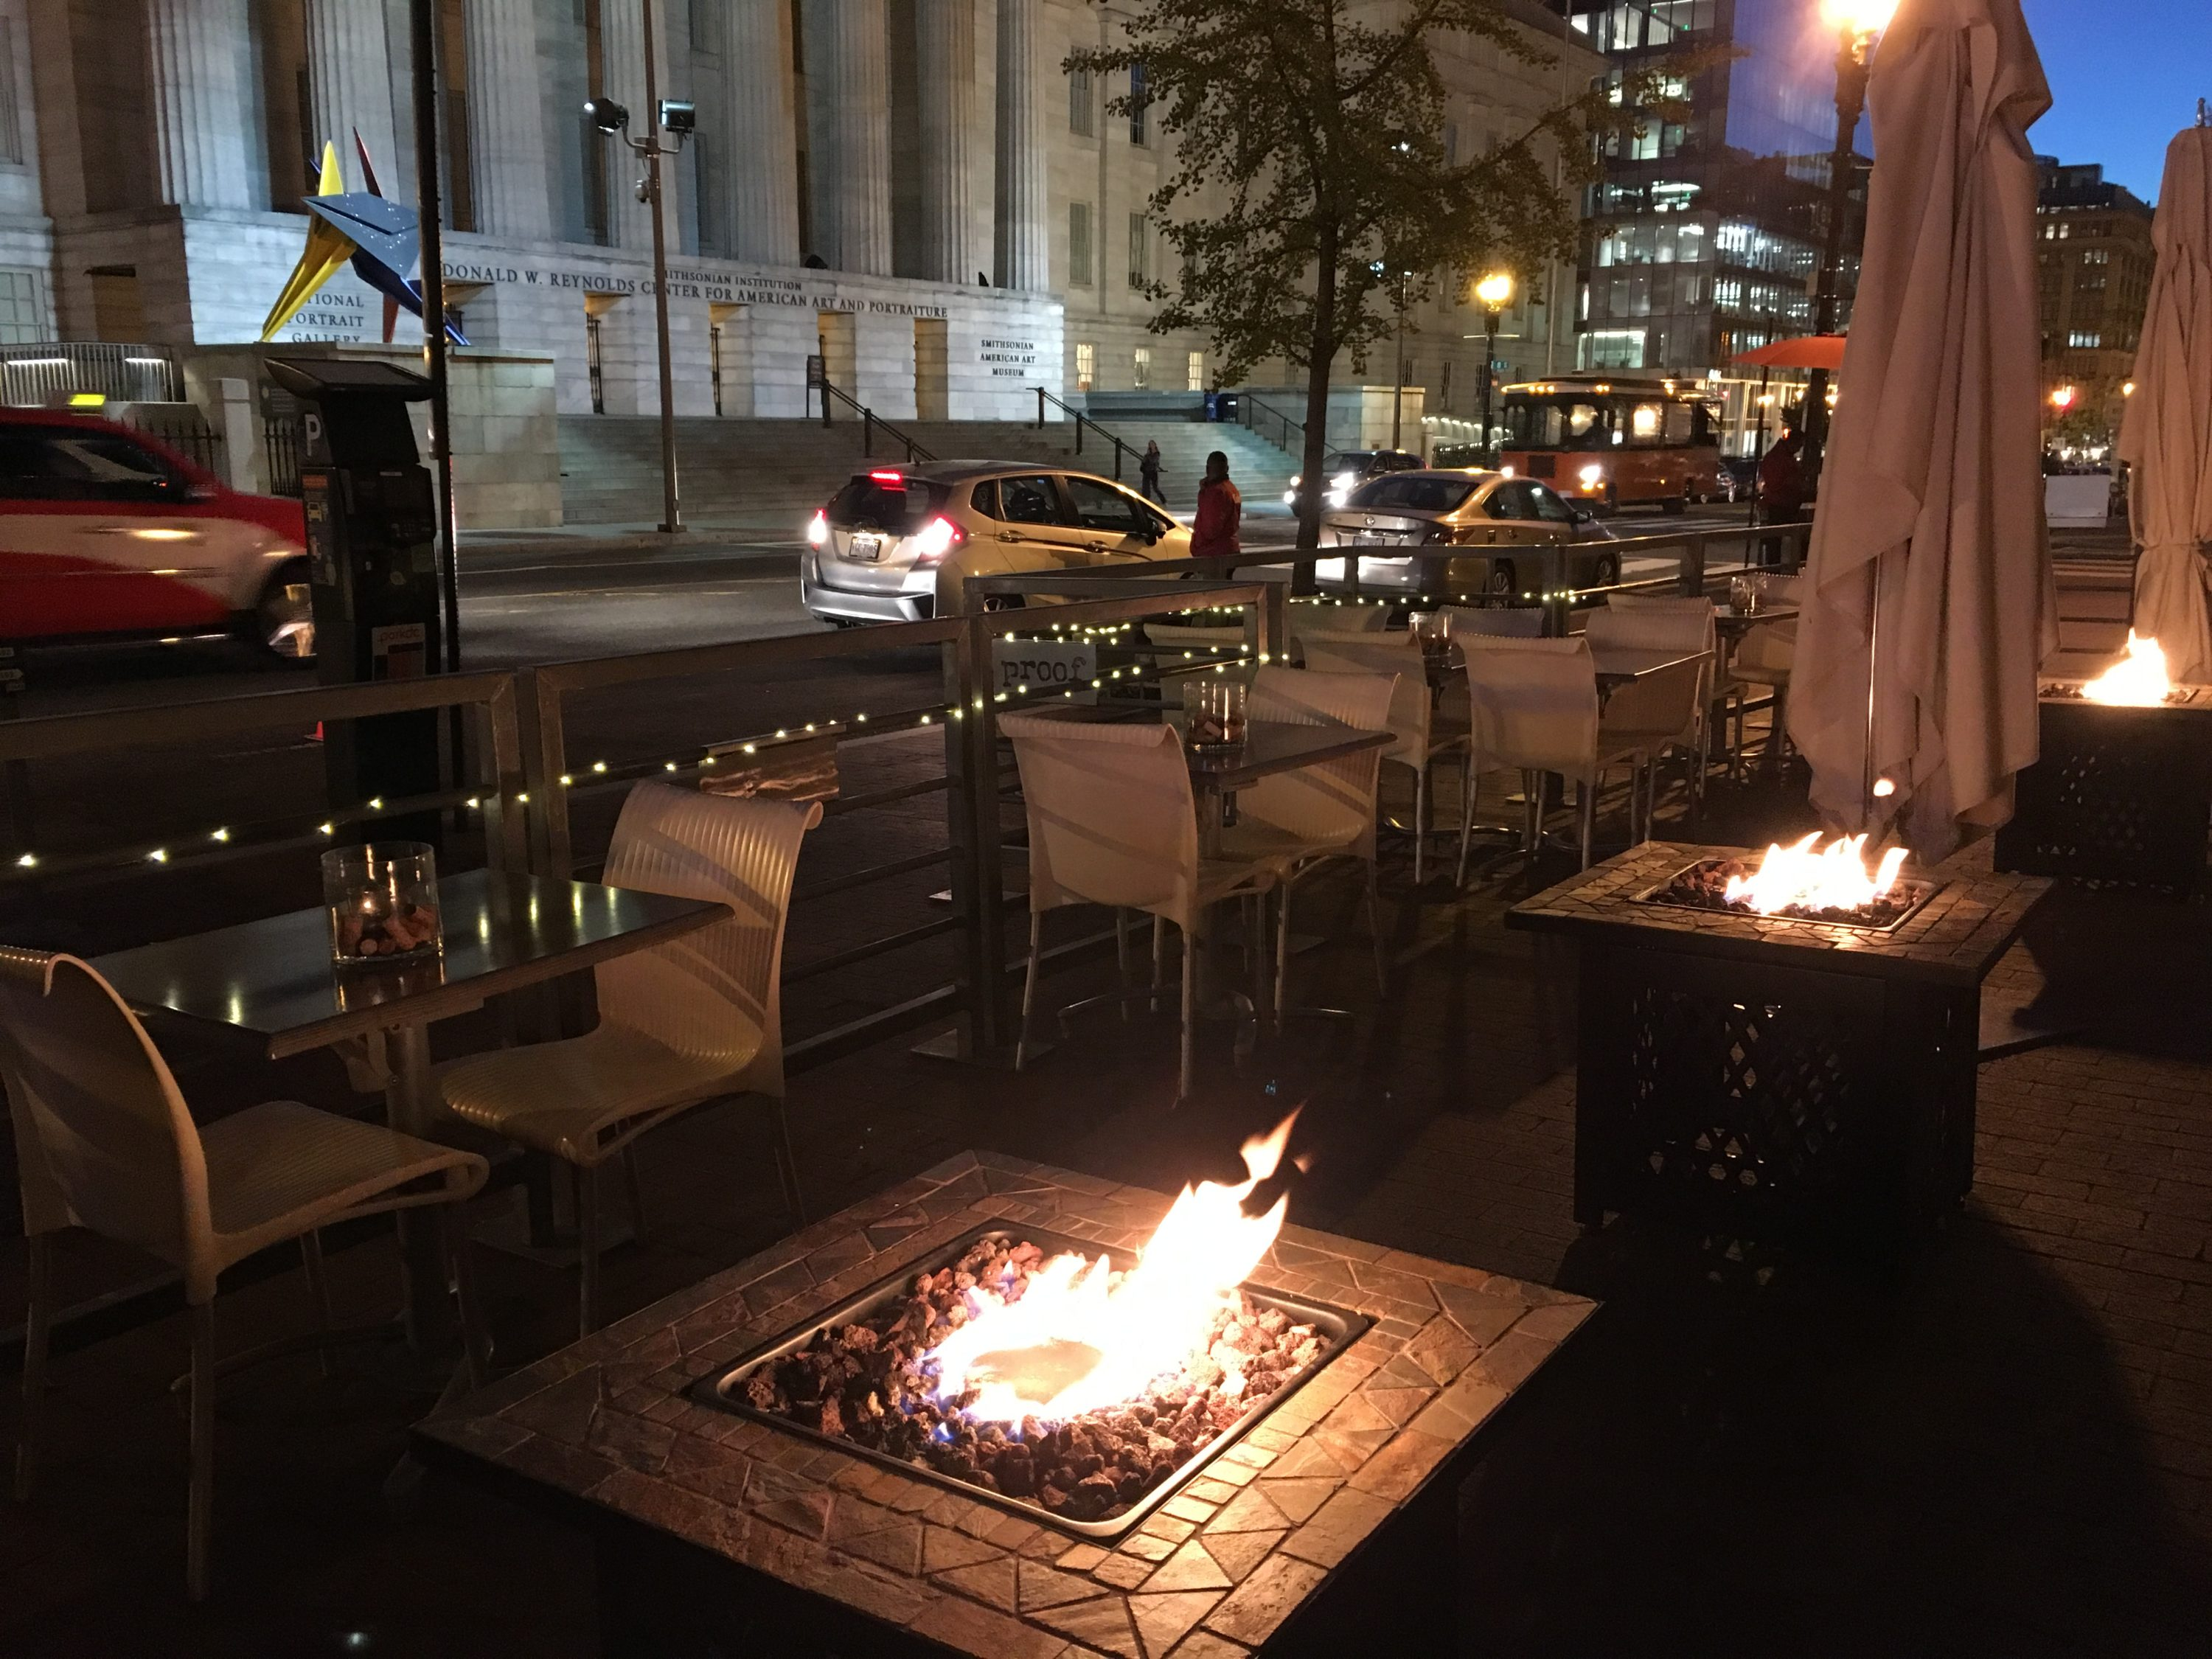 Warm up with fire pits and a thermos of booze on Proof's winter patio. Photograph courtesy of Proof